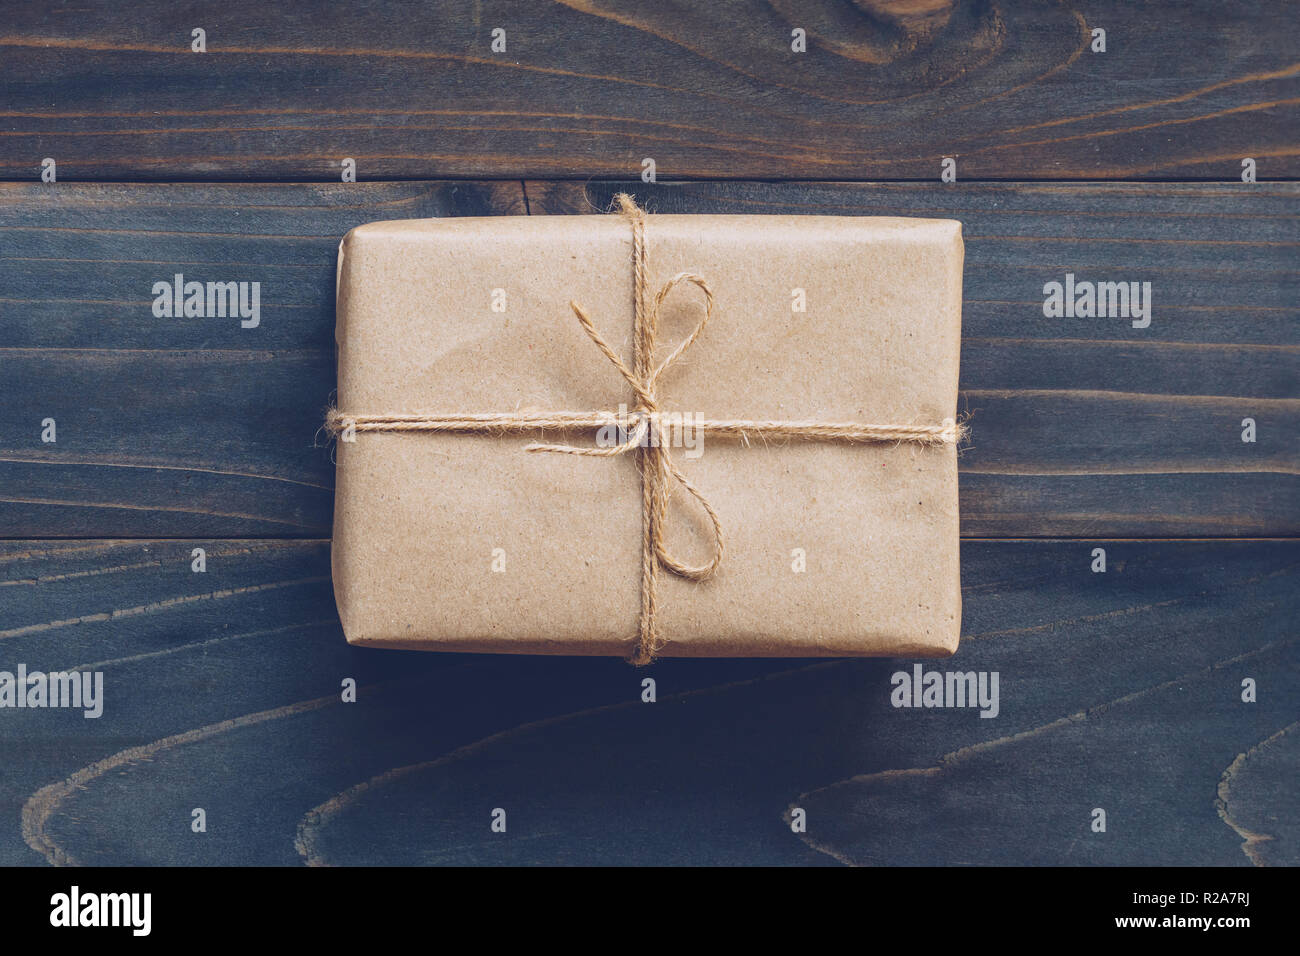 String or twine tied in a bow on kraft paper gift box no wooden table texture and background. - Stock Image